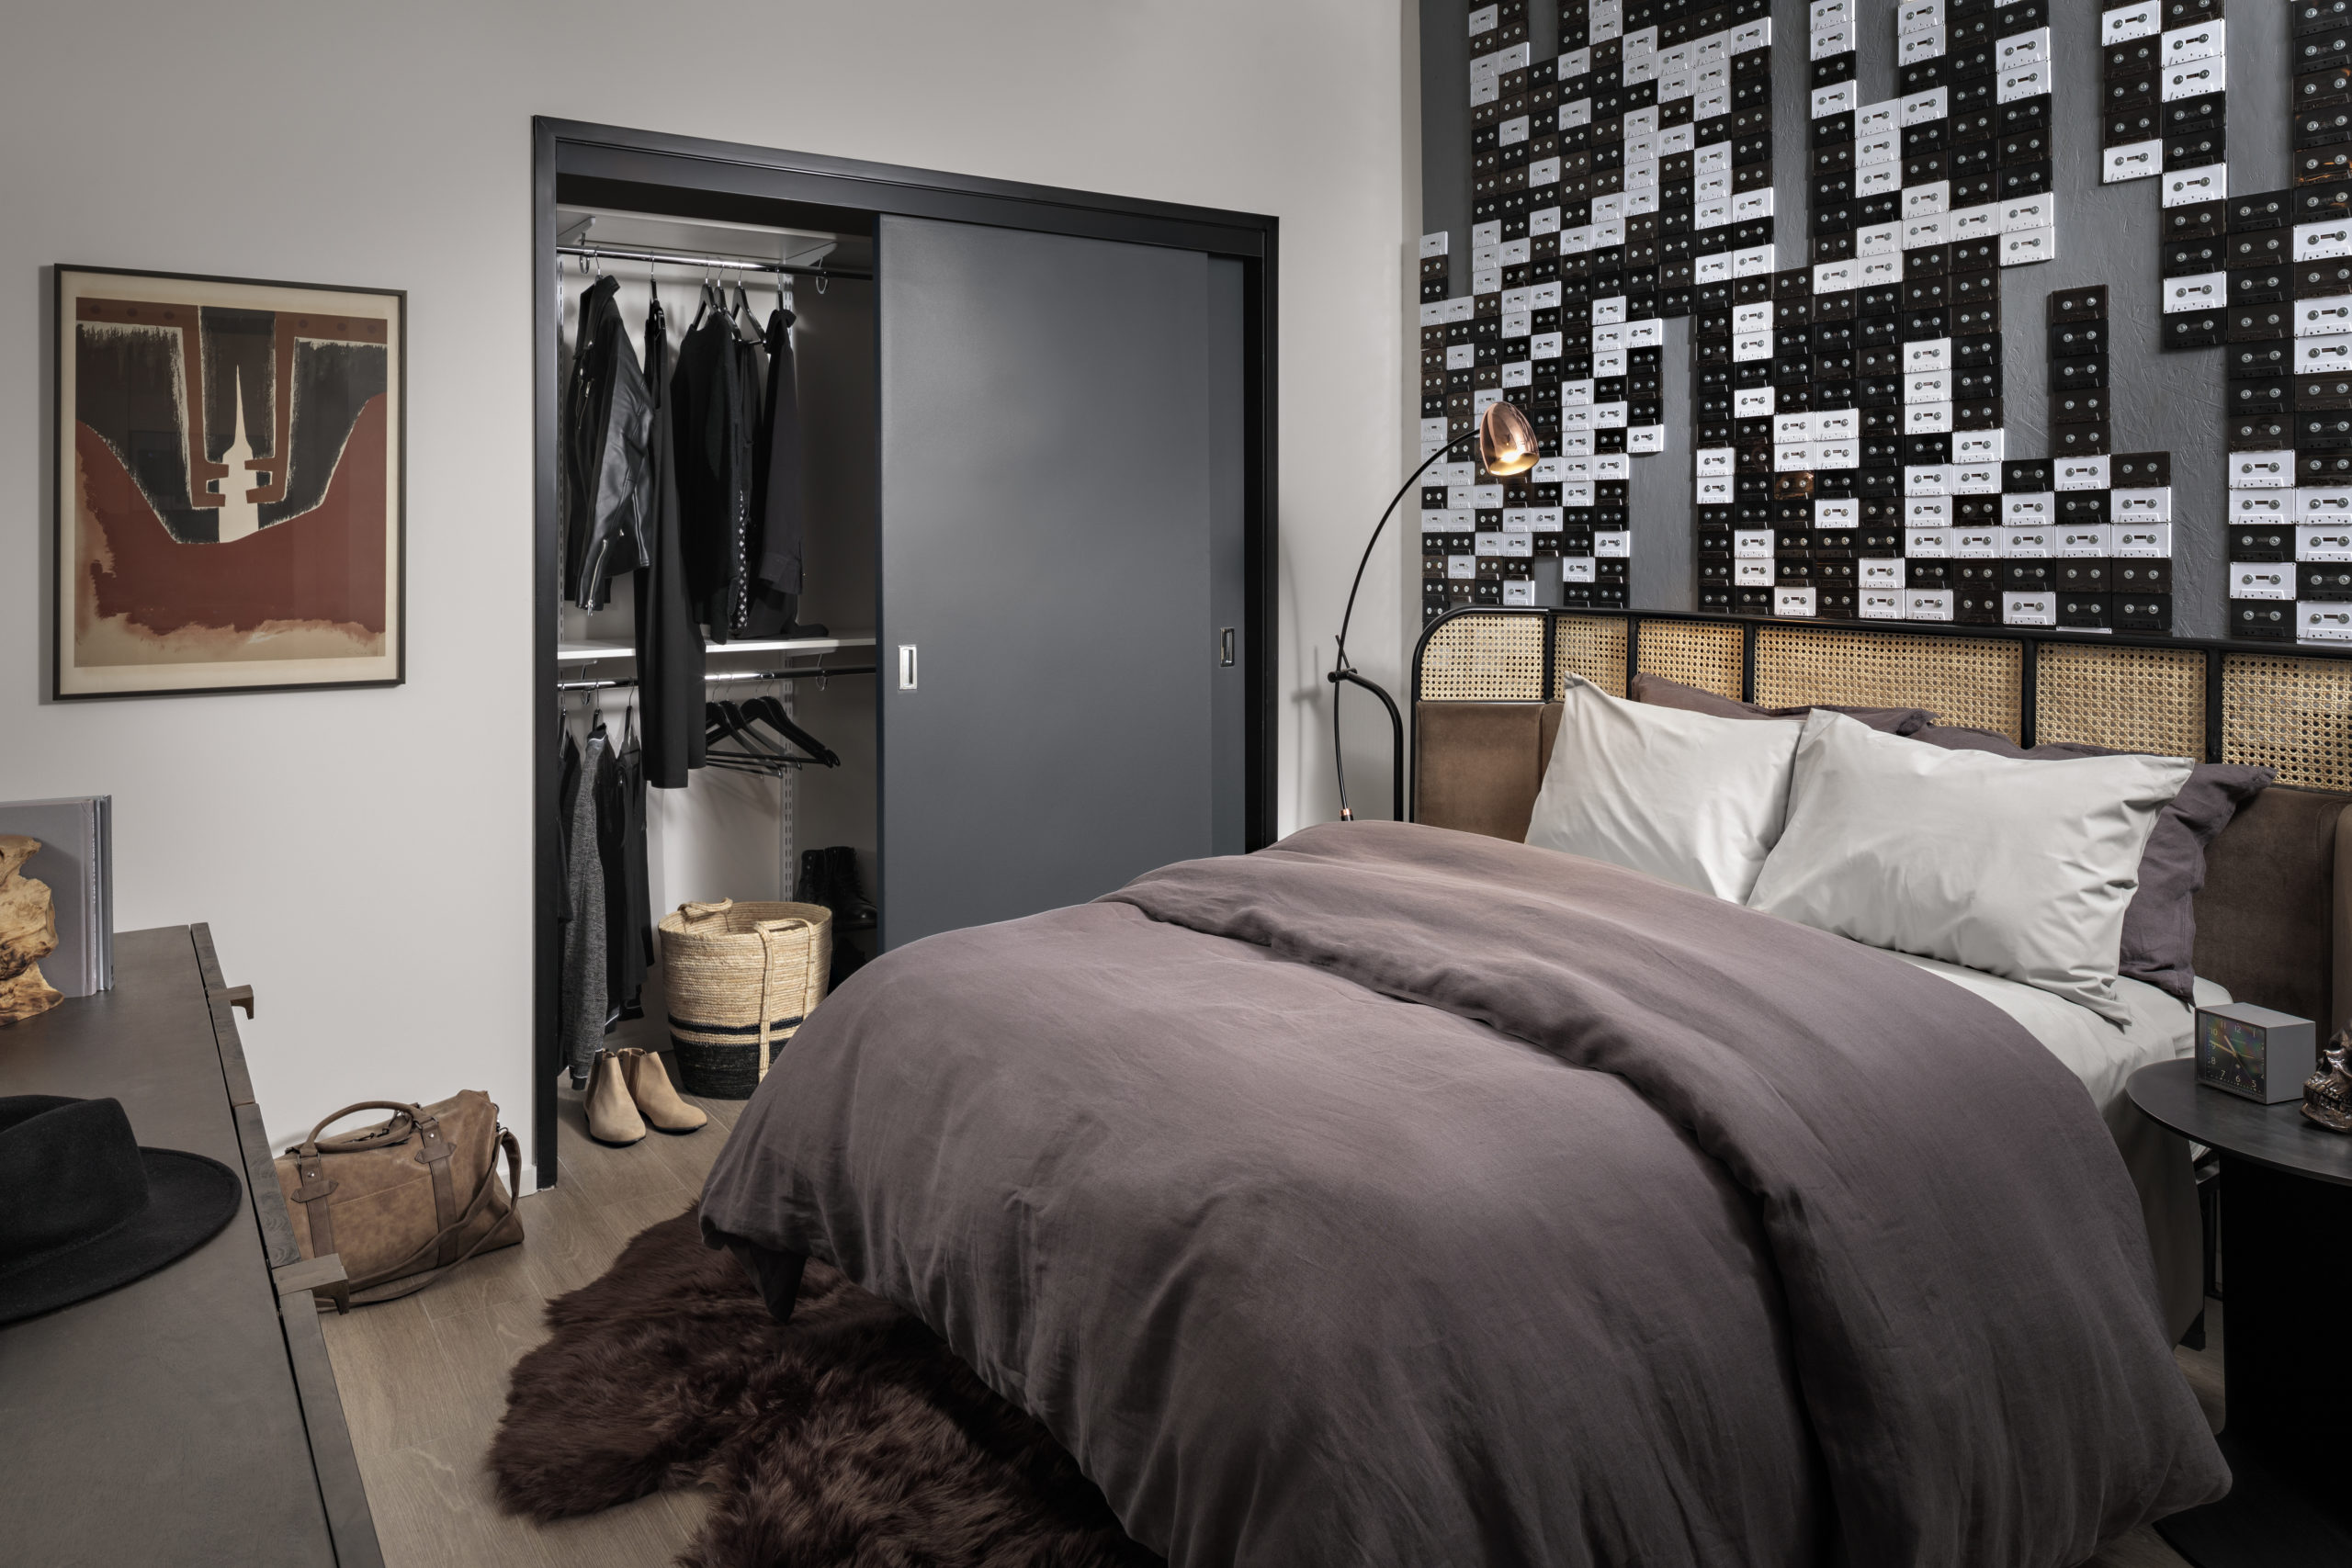 full size bed with black duvet in spacious bedroom